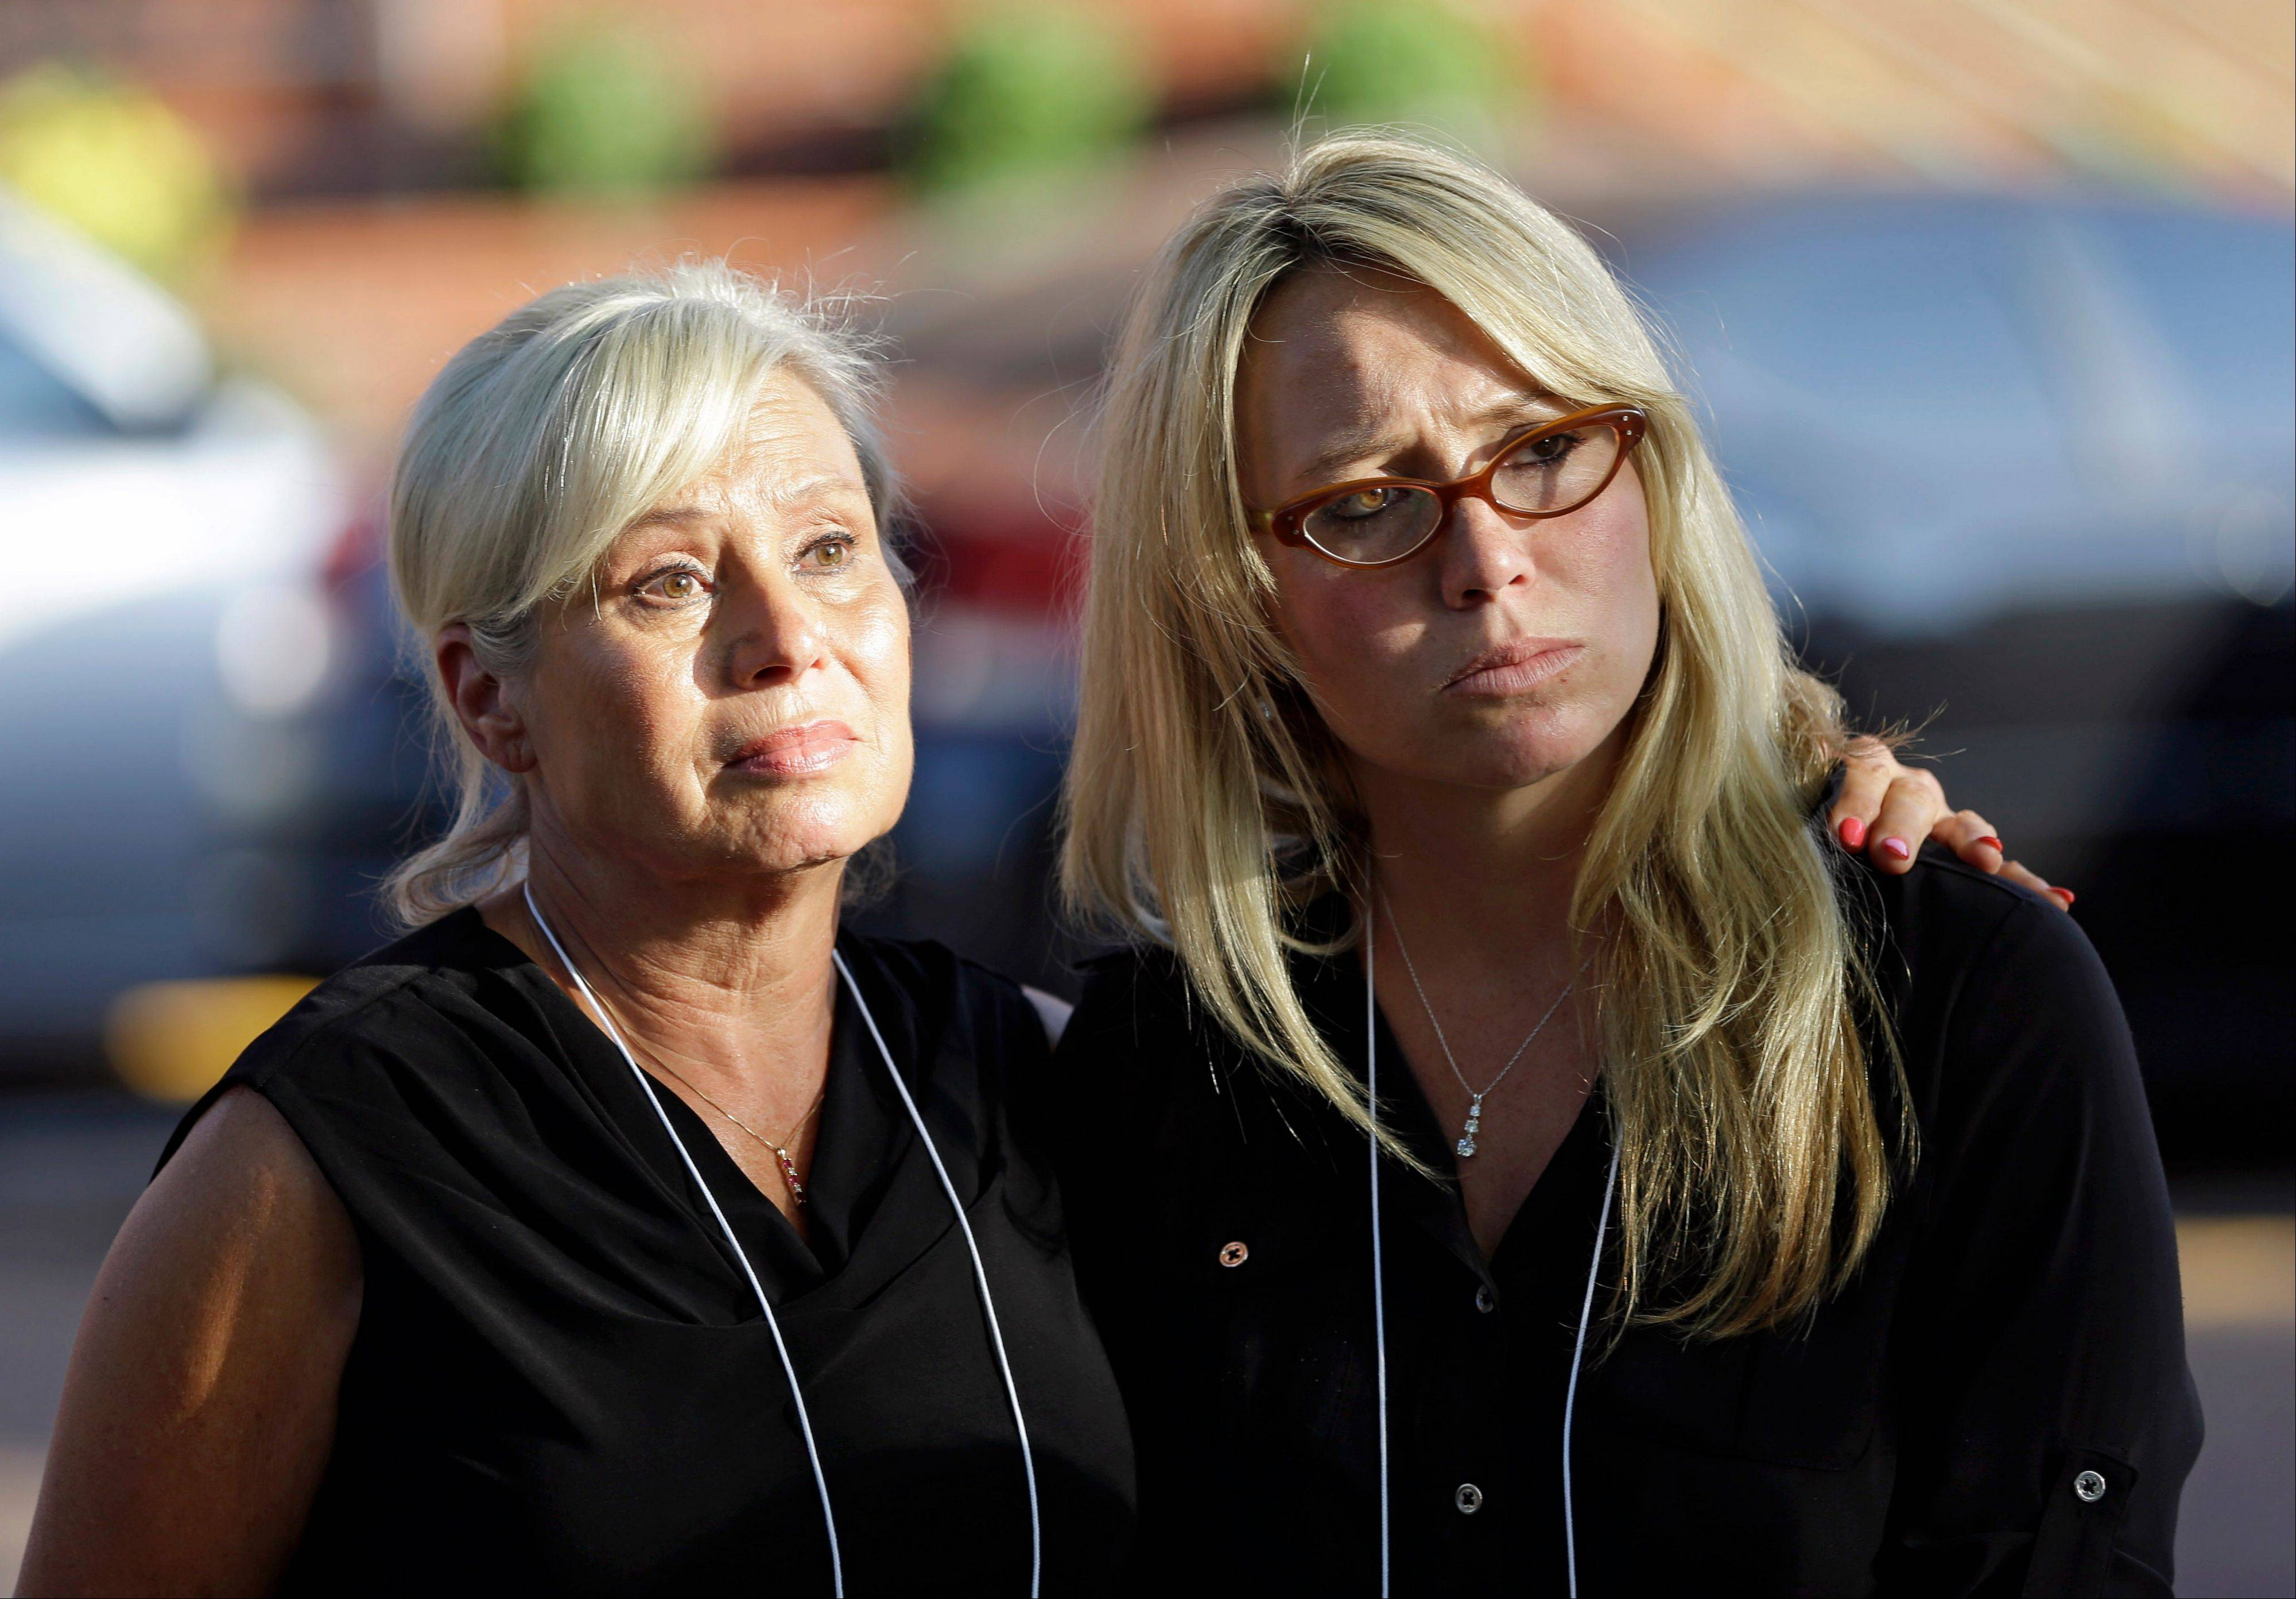 Donna Aldred, left, and her daughter, Leslie Lambert, right, listen during a news conference after the execution of Kimberly McCarthy at the Texas Department of Criminal Justice Huntsville Unit. Aldred�s mother, Dorothy Booth, was killed by Kimberly McCarthy in 1997. McCarthy is the 500th person executed in Texas since 1982.